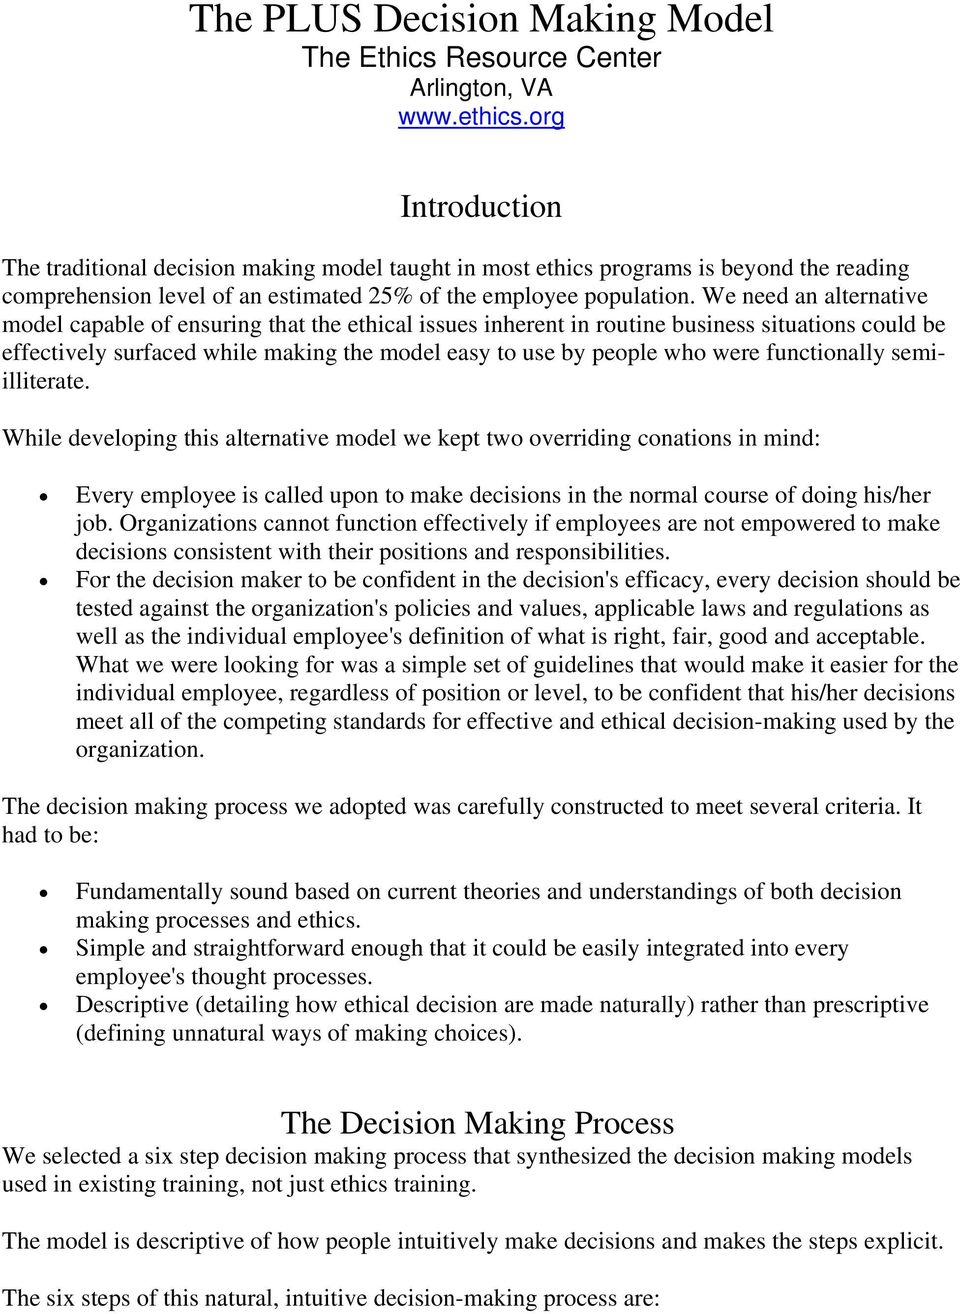 The PLUS Decision Making Model The Ethics Resource Center